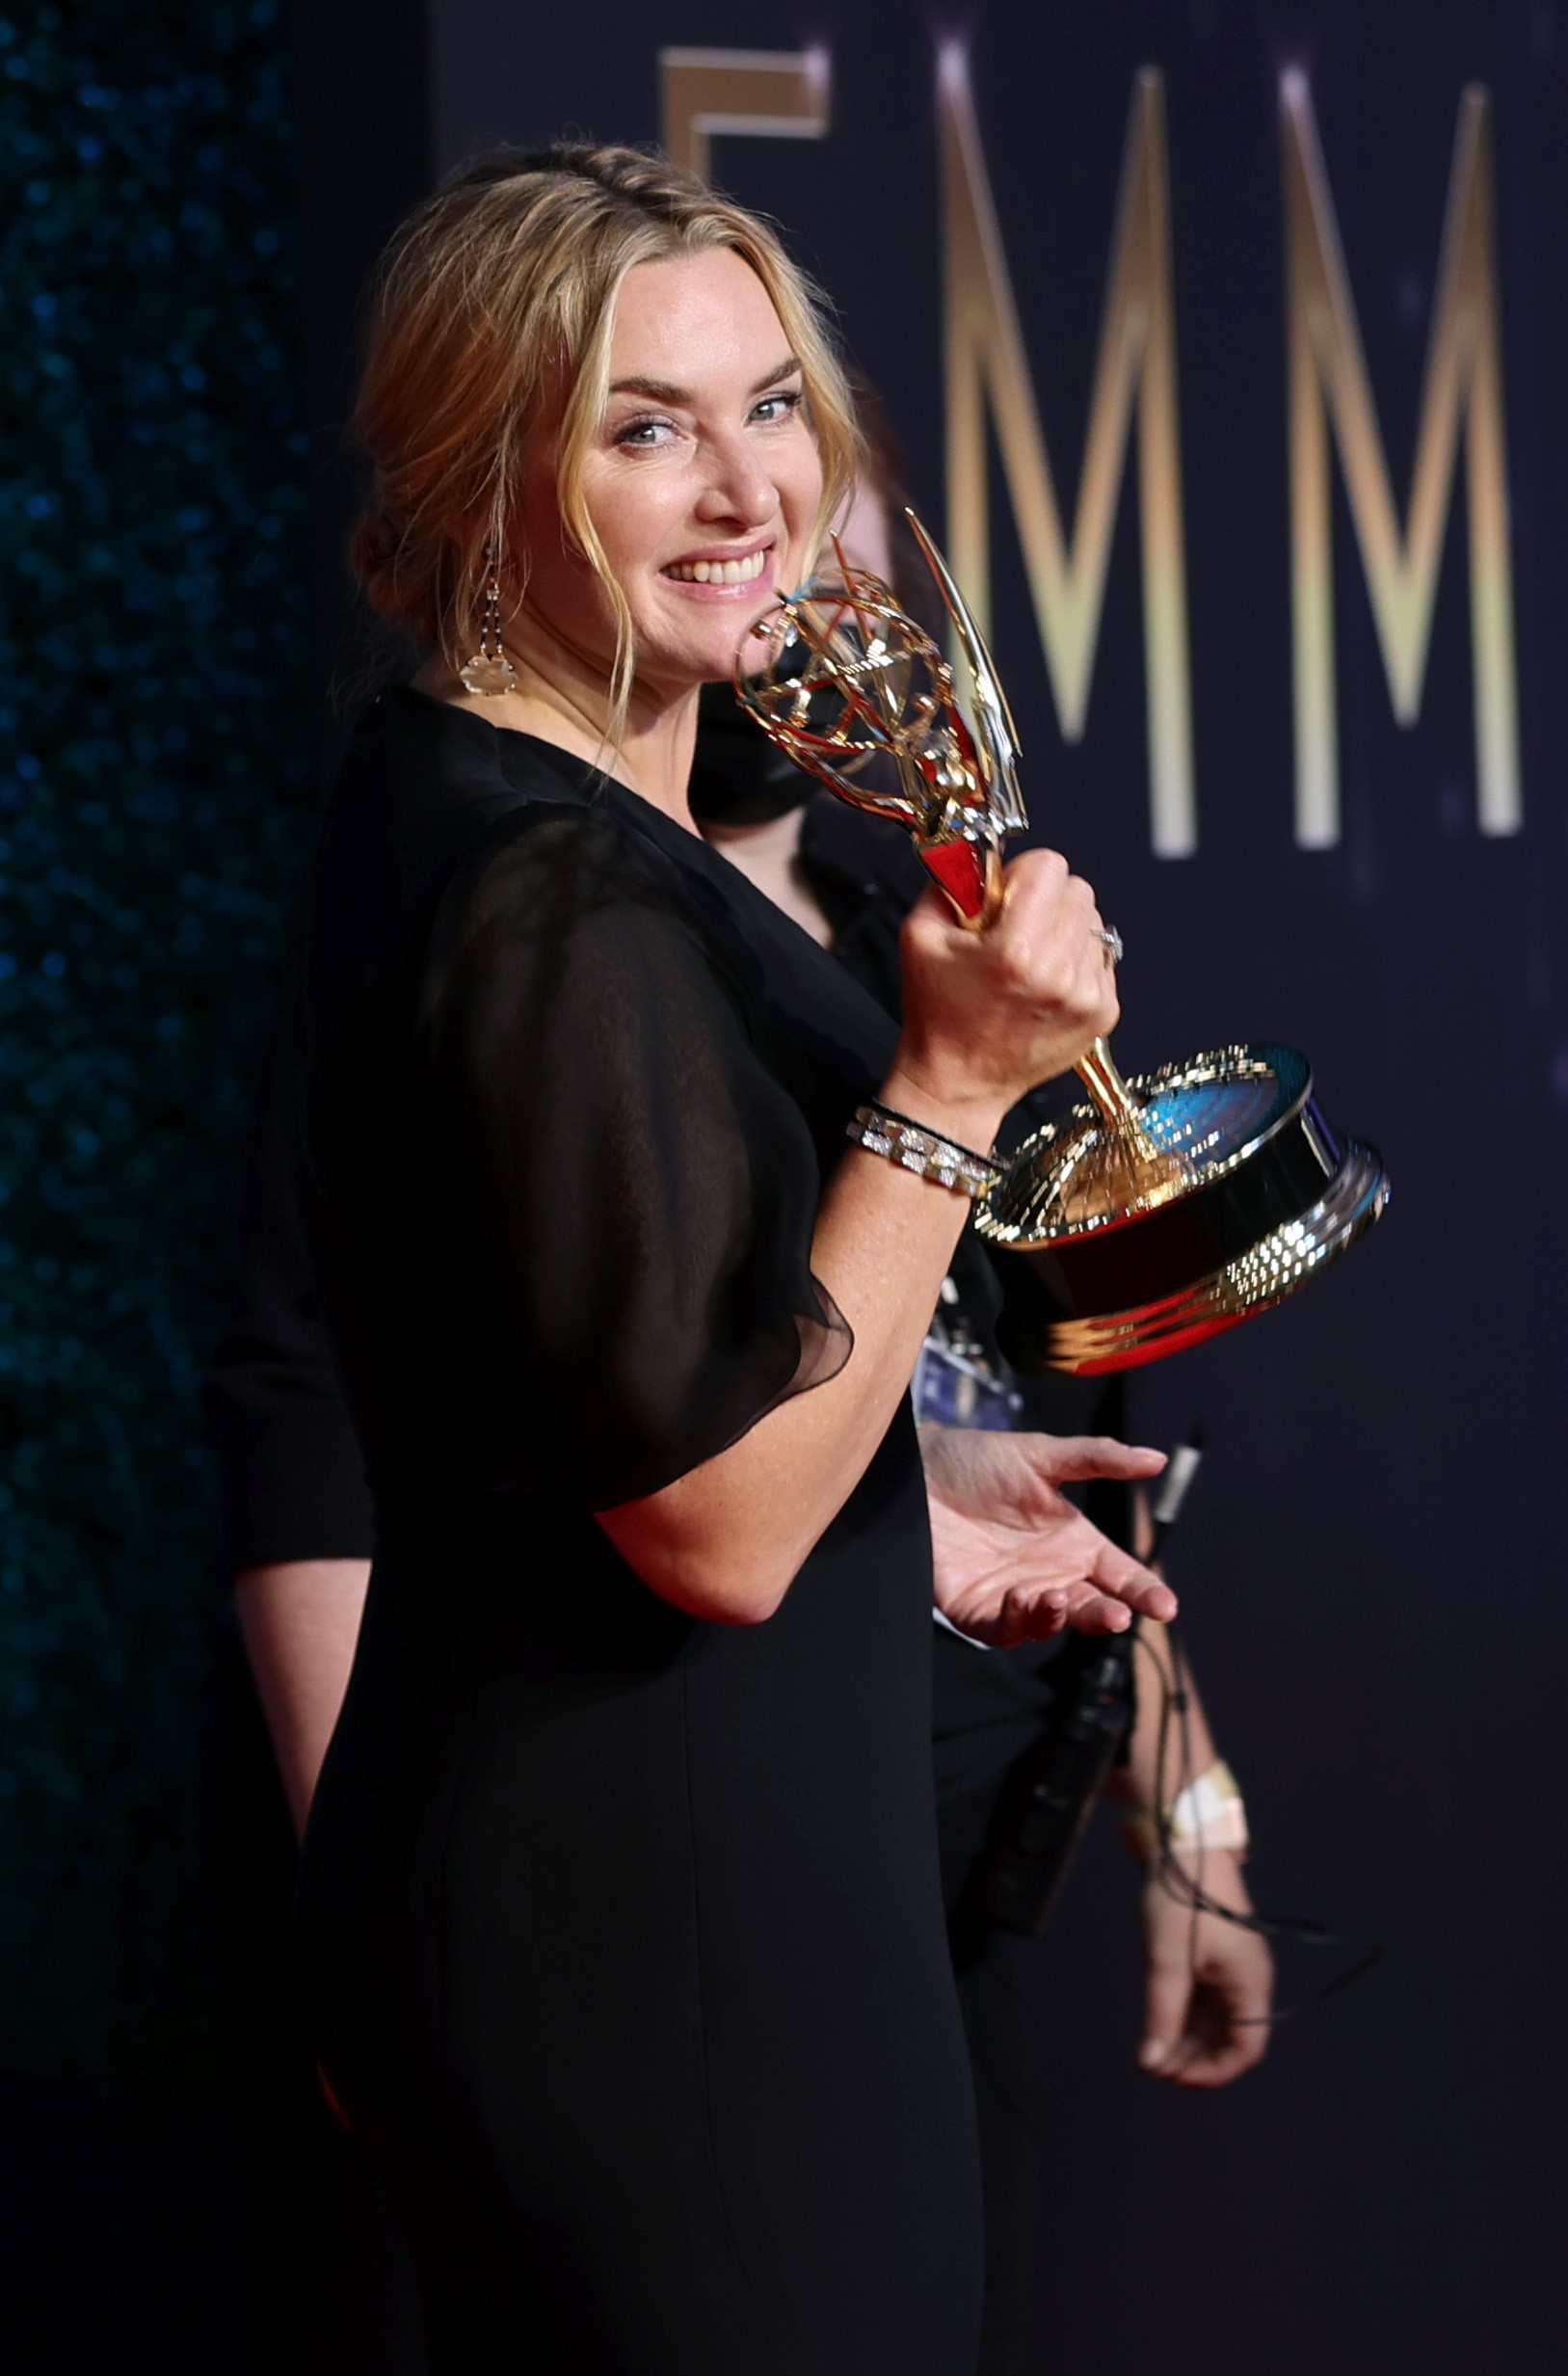 LOS ANGELES, CALIFORNIA - SEPTEMBER 19: Kate Winslet, winner of the Outstanding Lead Actress in a Limited or Anthology Series or Movie award for 'Mare Of Easttown,' poses in the press room during the 73rd Primetime Emmy Awards at L.A. LIVE on September 19, 2021 in Los Angeles, California. Rich Fury/Getty Images/AFP == FOR NEWSPAPERS, INTERNET, TELCOS & TELEVISION USE ONLY ==